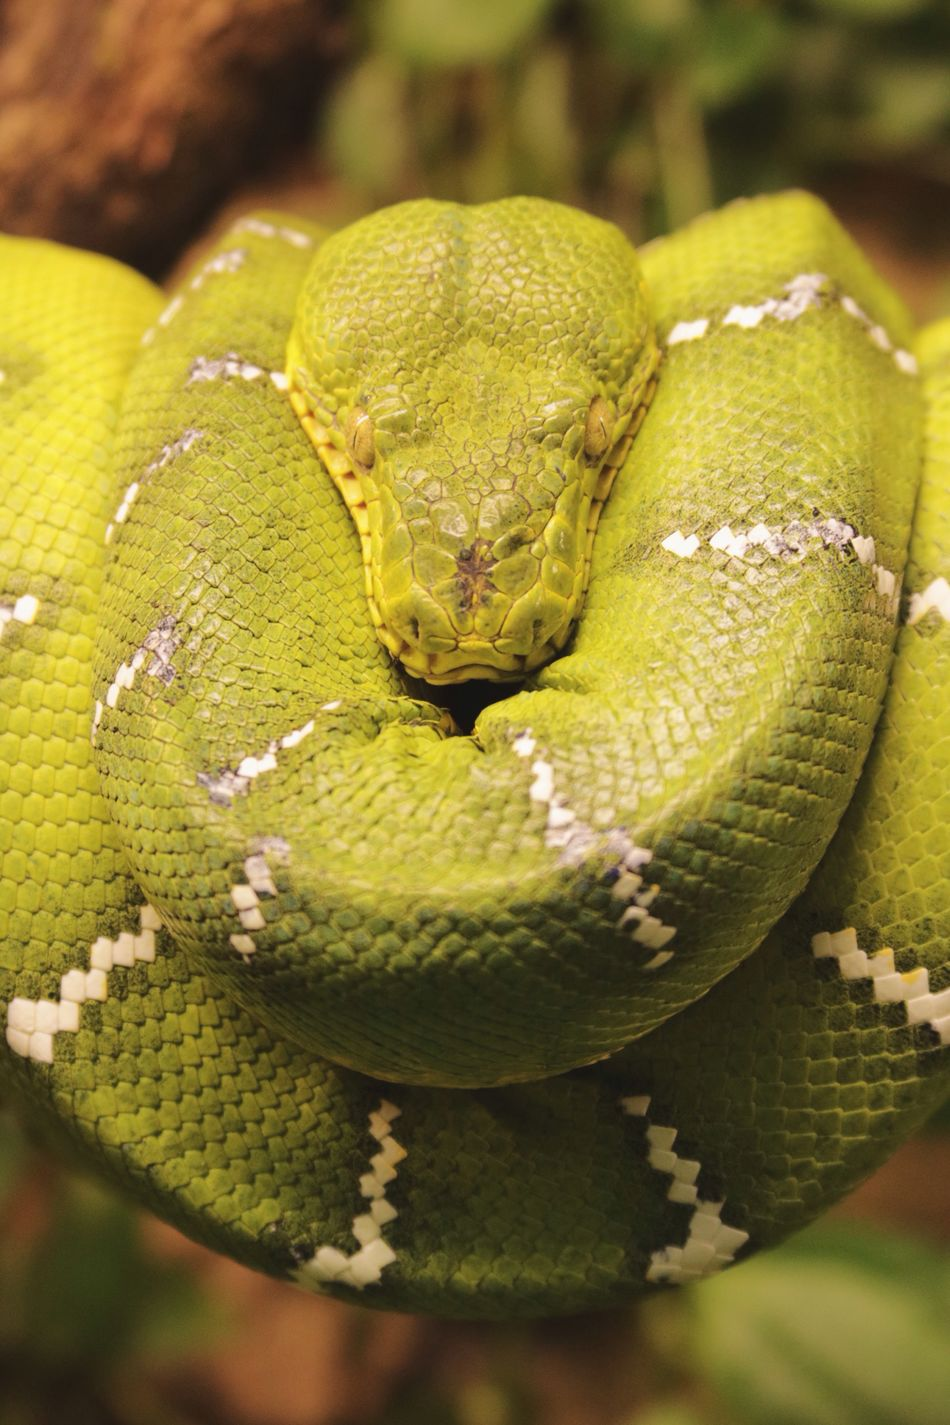 Boa One Animal Reptile Animal Themes Animal Wildlife Green Color Close-up Animals In The Wild Nature Animal Body Part Animal Skin Cold Danger Poison Dangerous